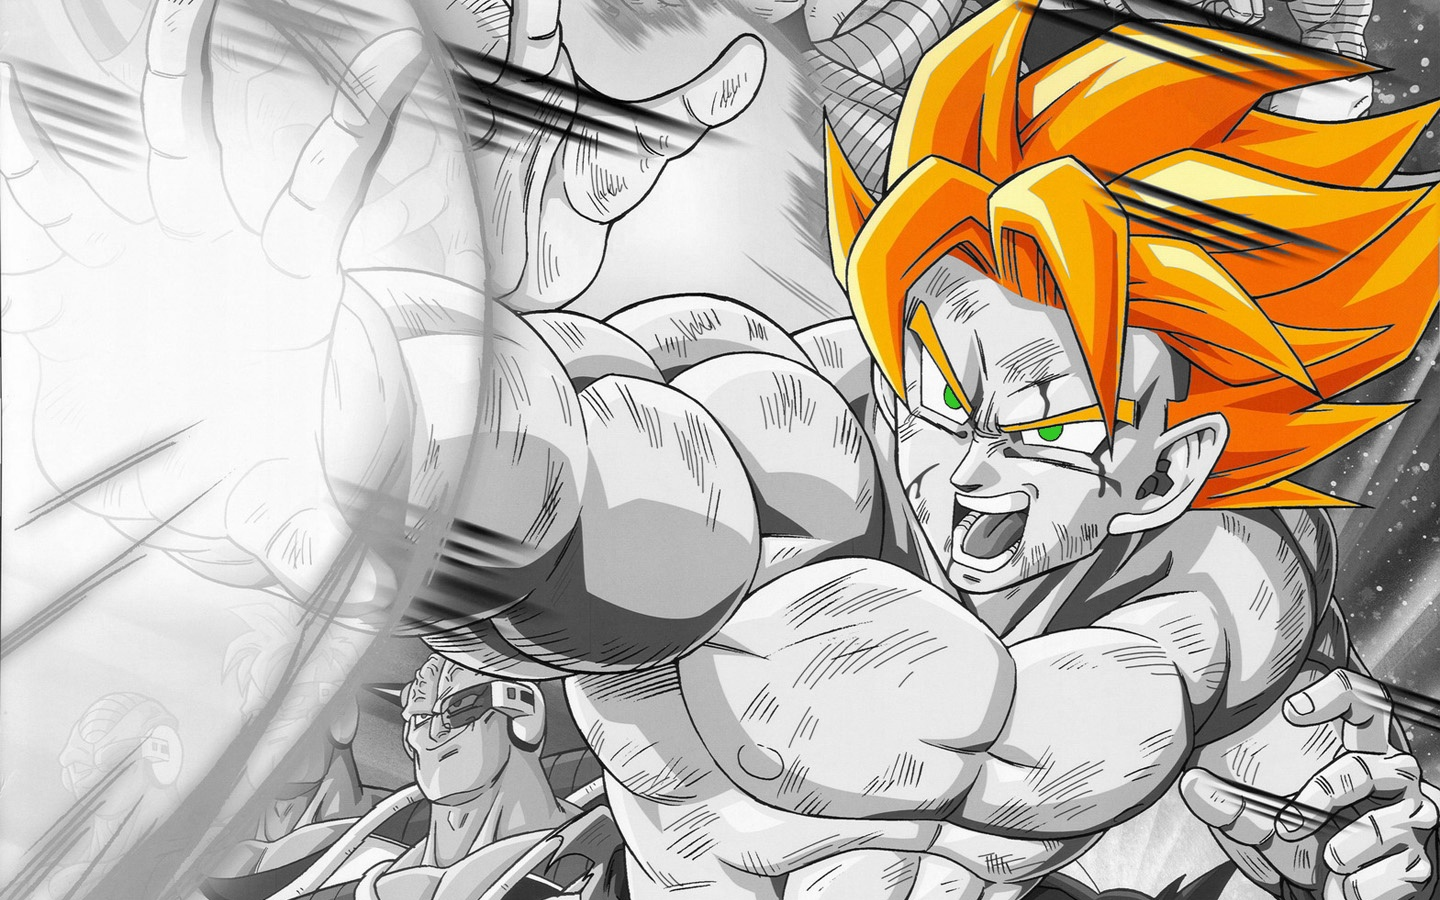 http://2.bp.blogspot.com/-ukQjEvAU6OU/TznO3VSKVXI/AAAAAAAABSc/on51eATwbXQ/s1600/6843_dragon_ball_z_hd_wallpapers.jpg